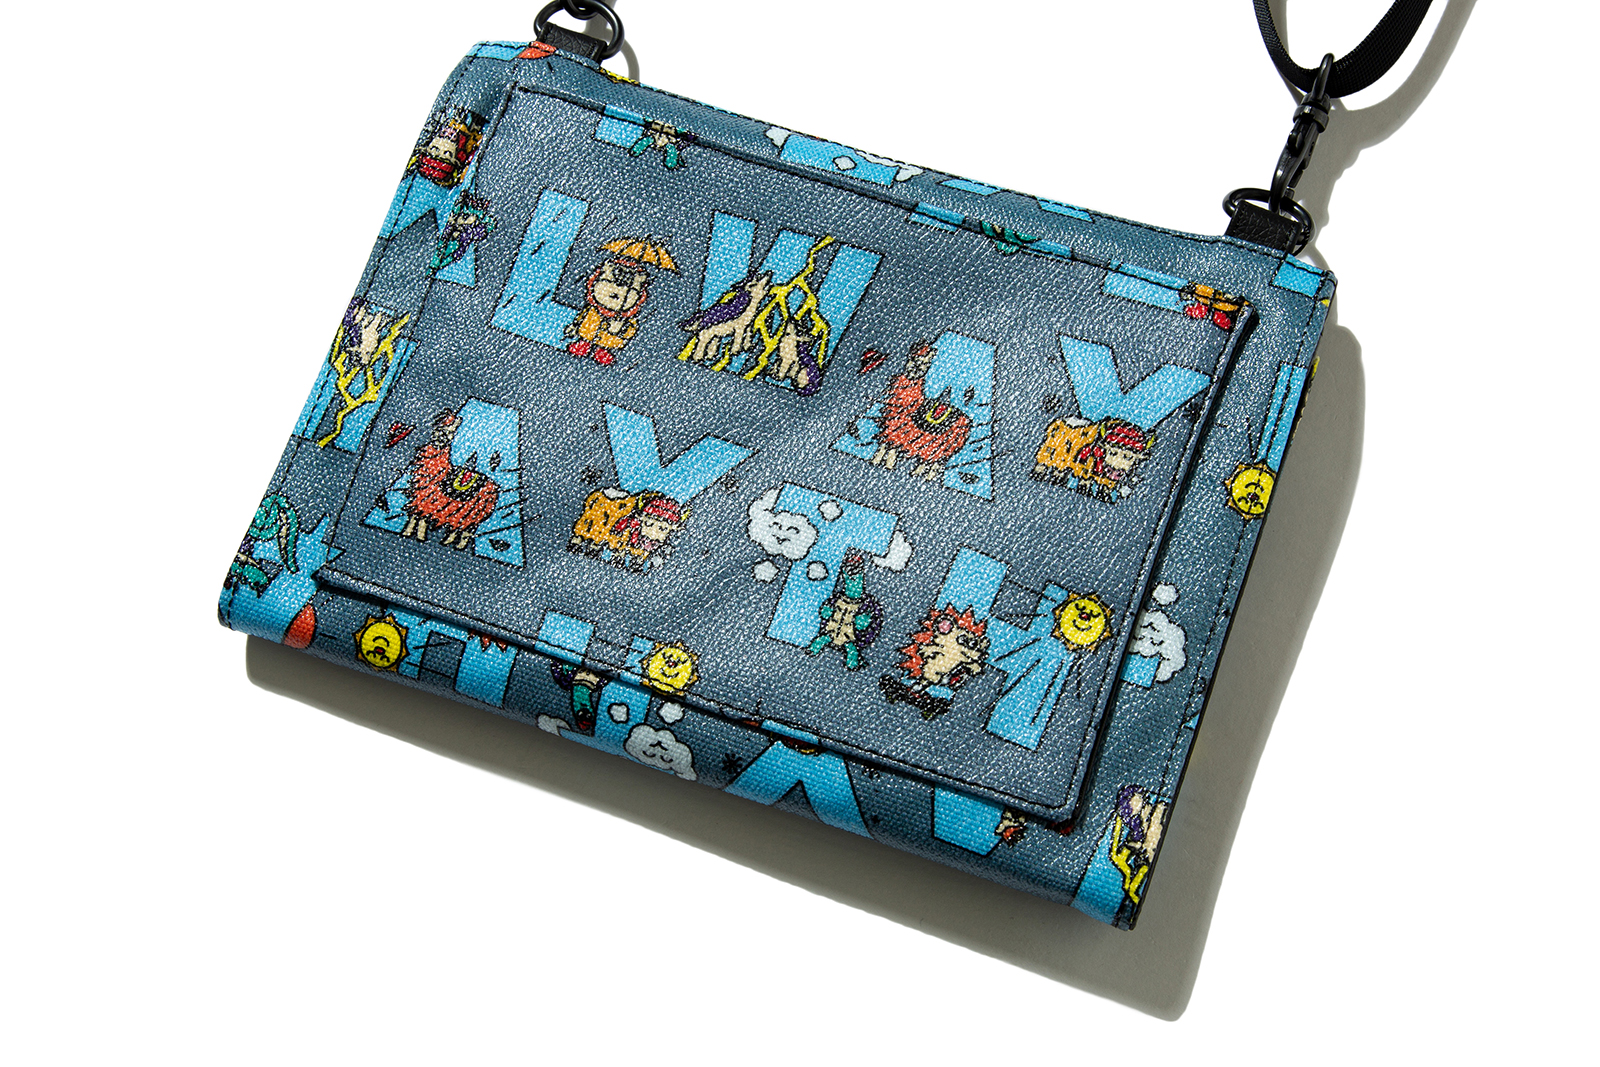 alwayth-x-lurk-x-fabrick-multifunctional-bag_p1